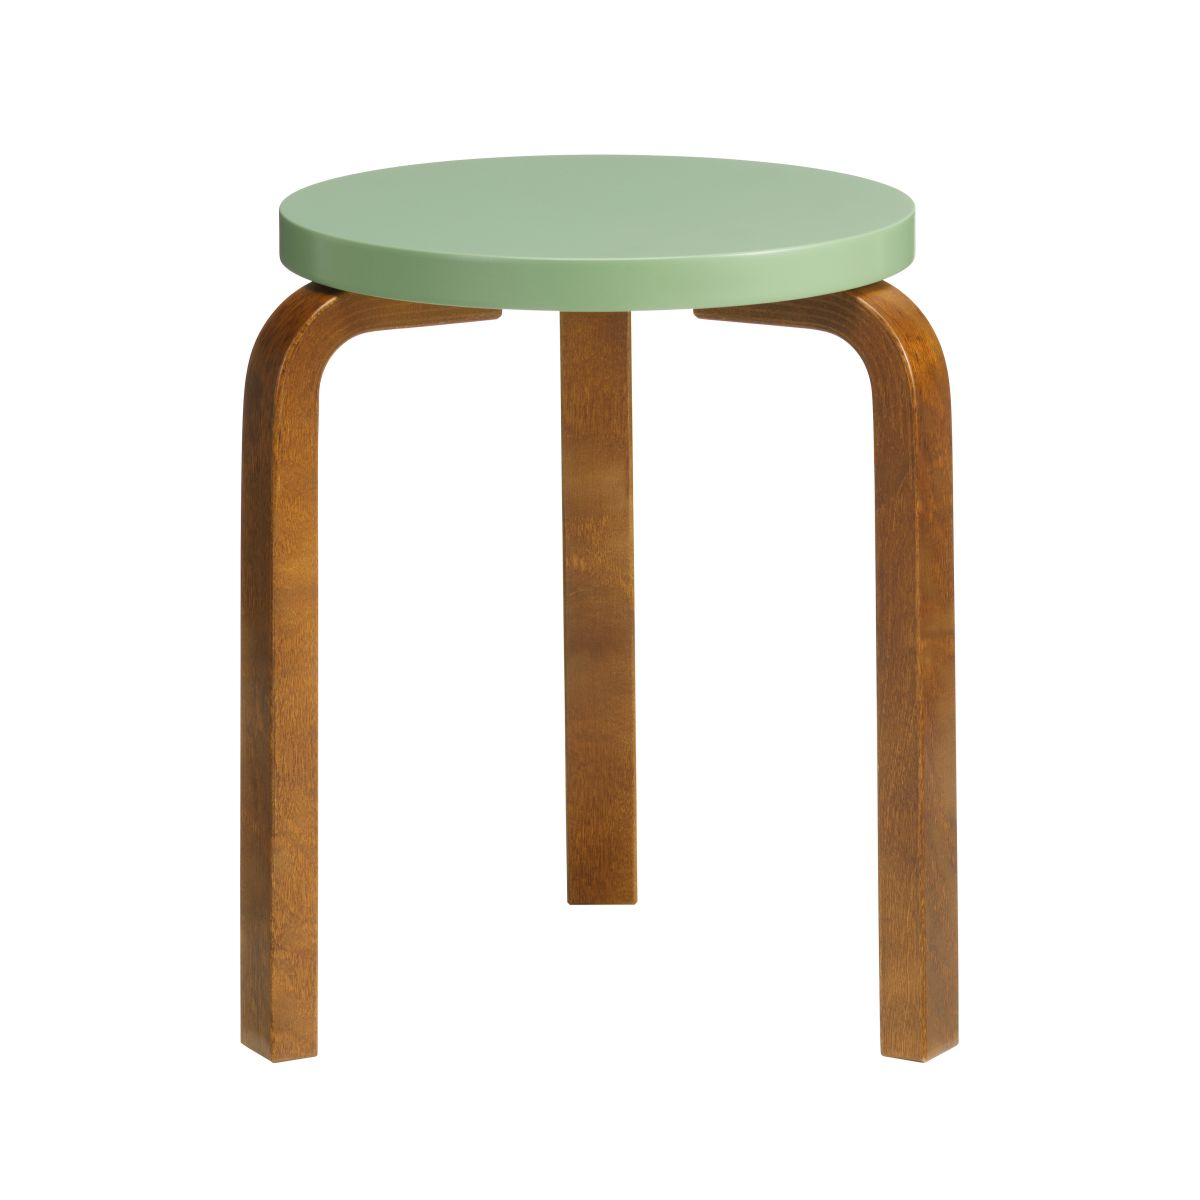 Stool_60_walnut_stain_pale_green_lacquer_F